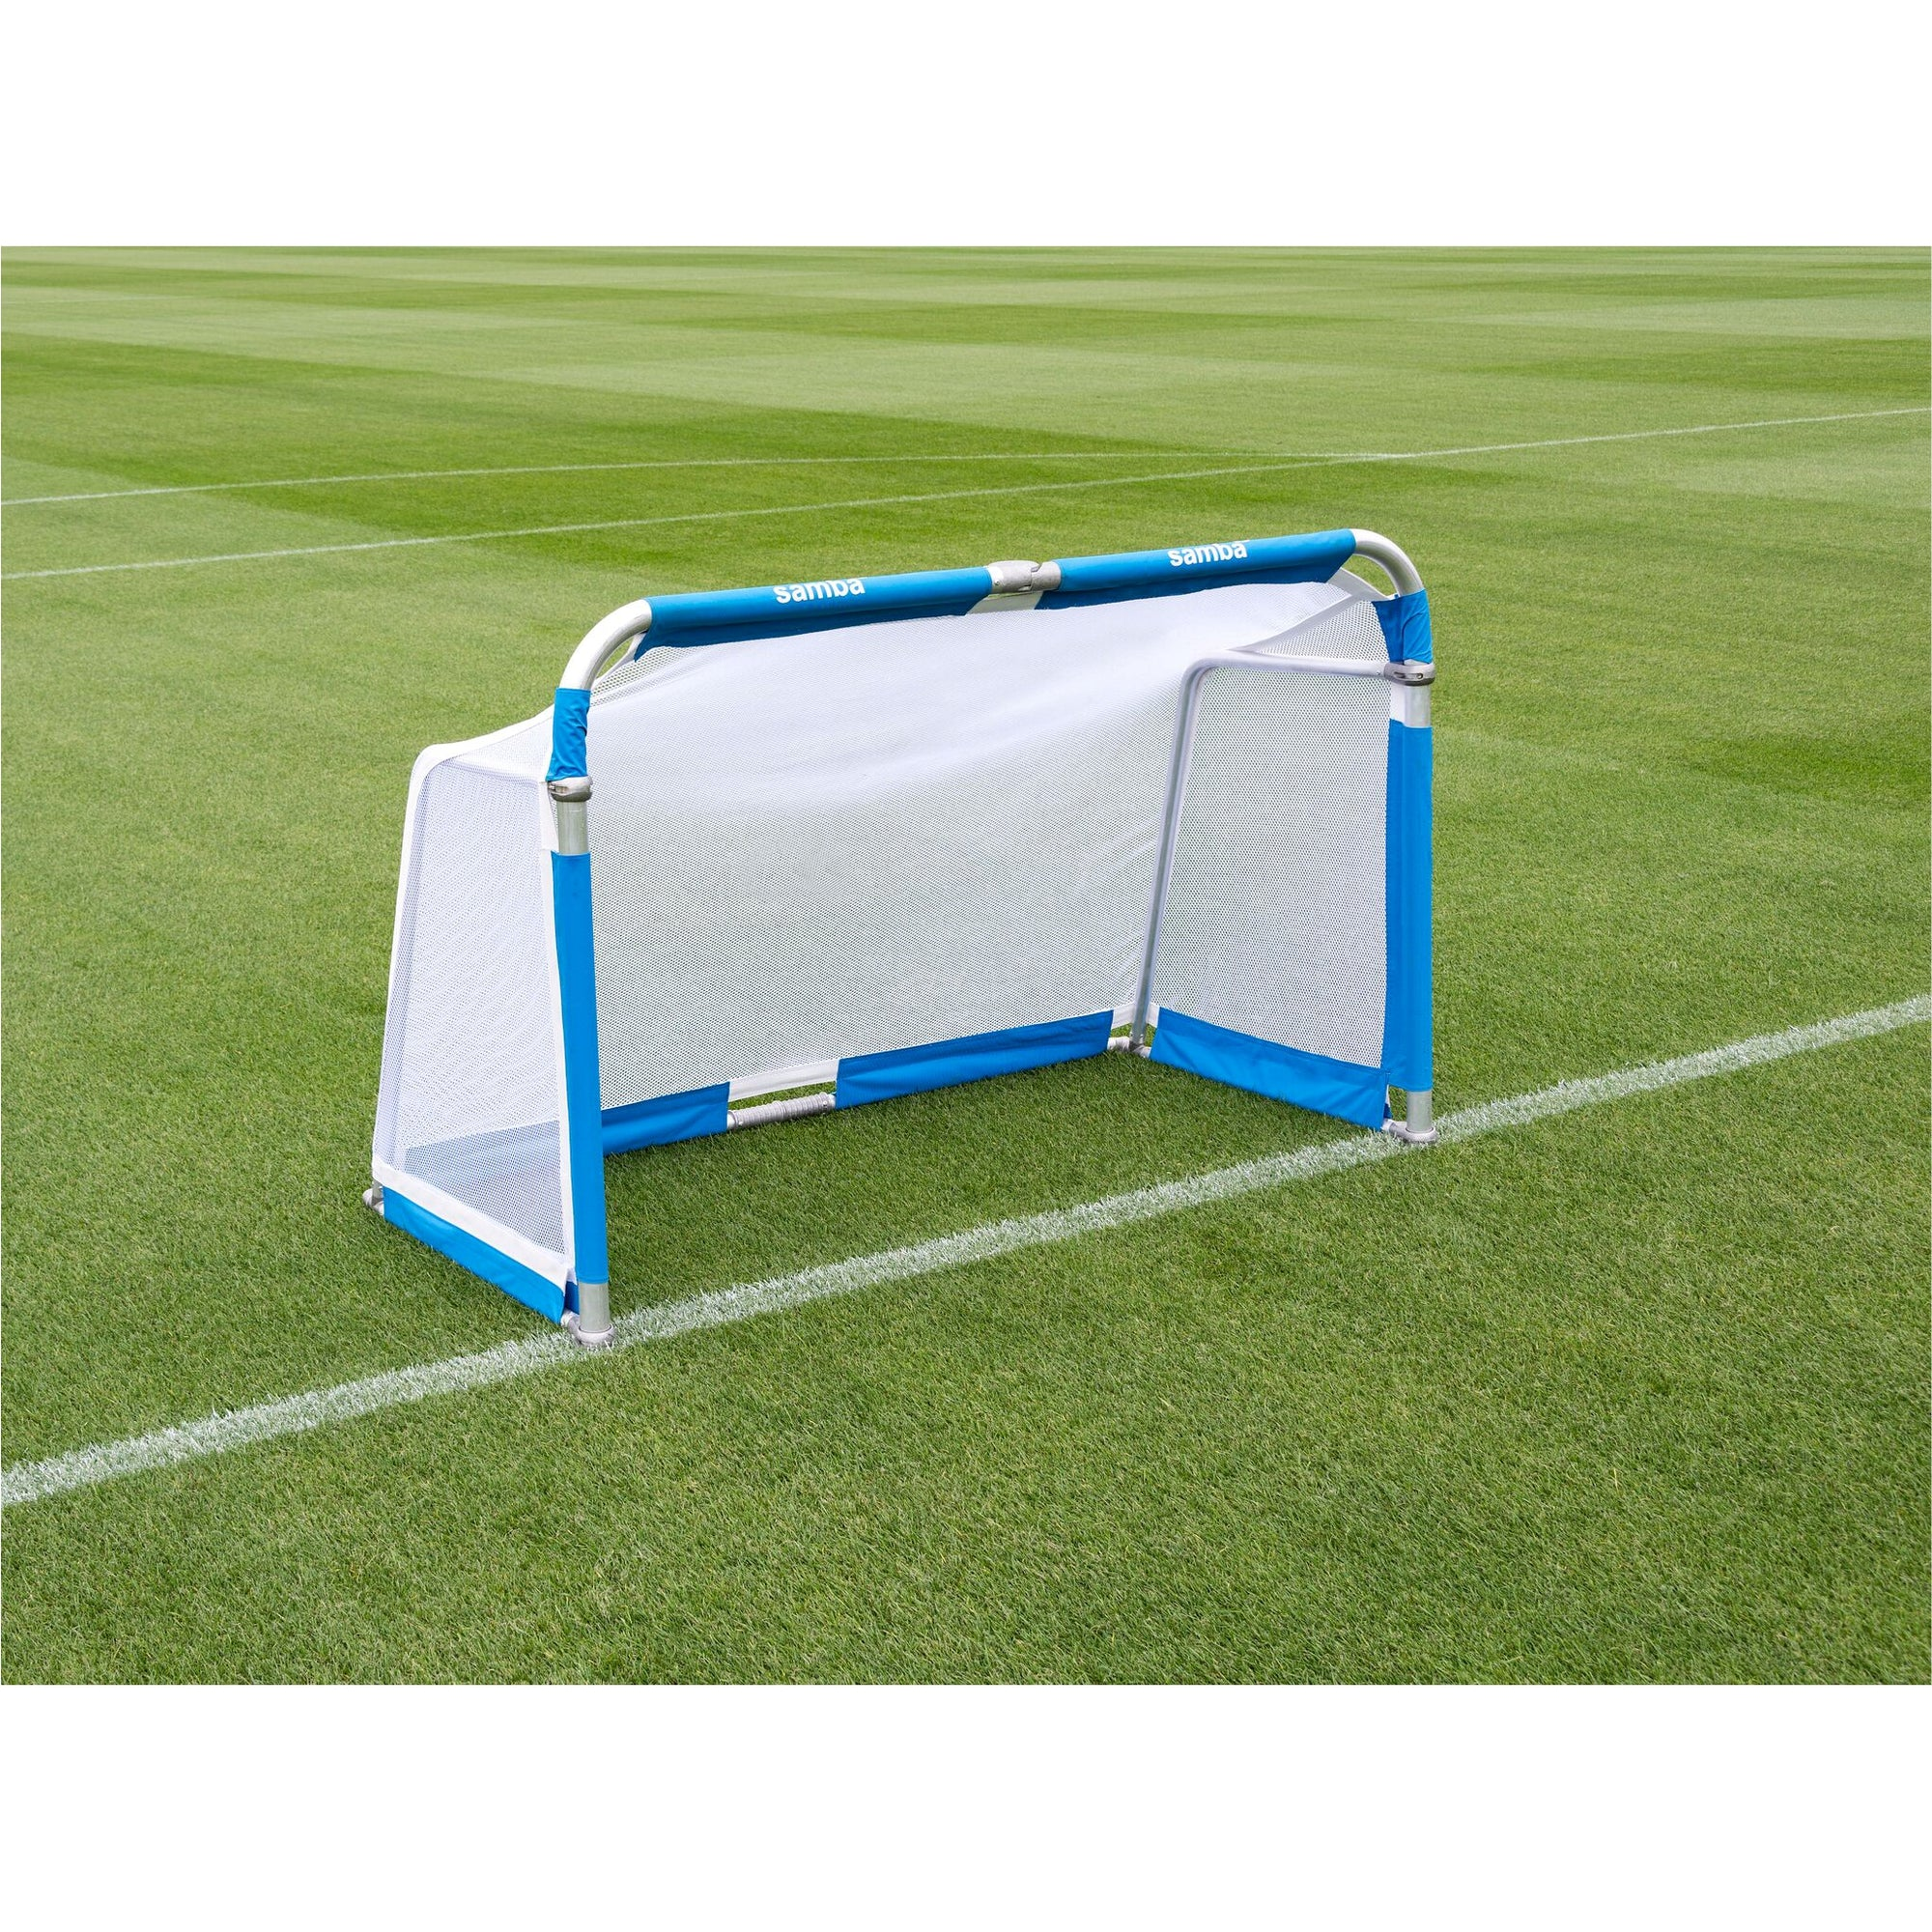 Samba 6' x 4' Aluminium Folding Goal on grass. Blue net fastening around the goal posts, white net